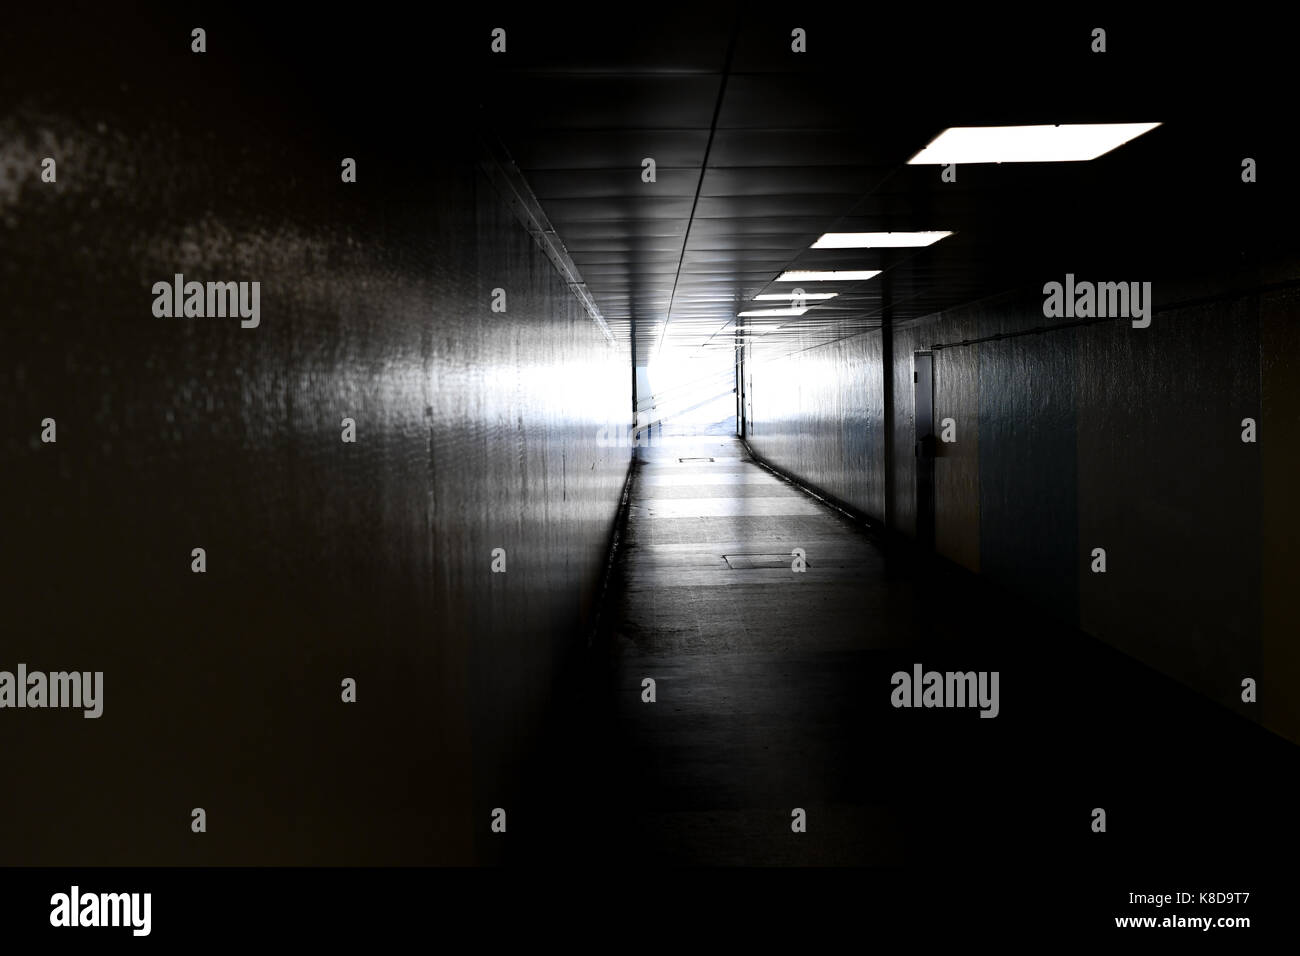 A view down into a underground dark subway leading to the exit with light bursting from it - Stock Image